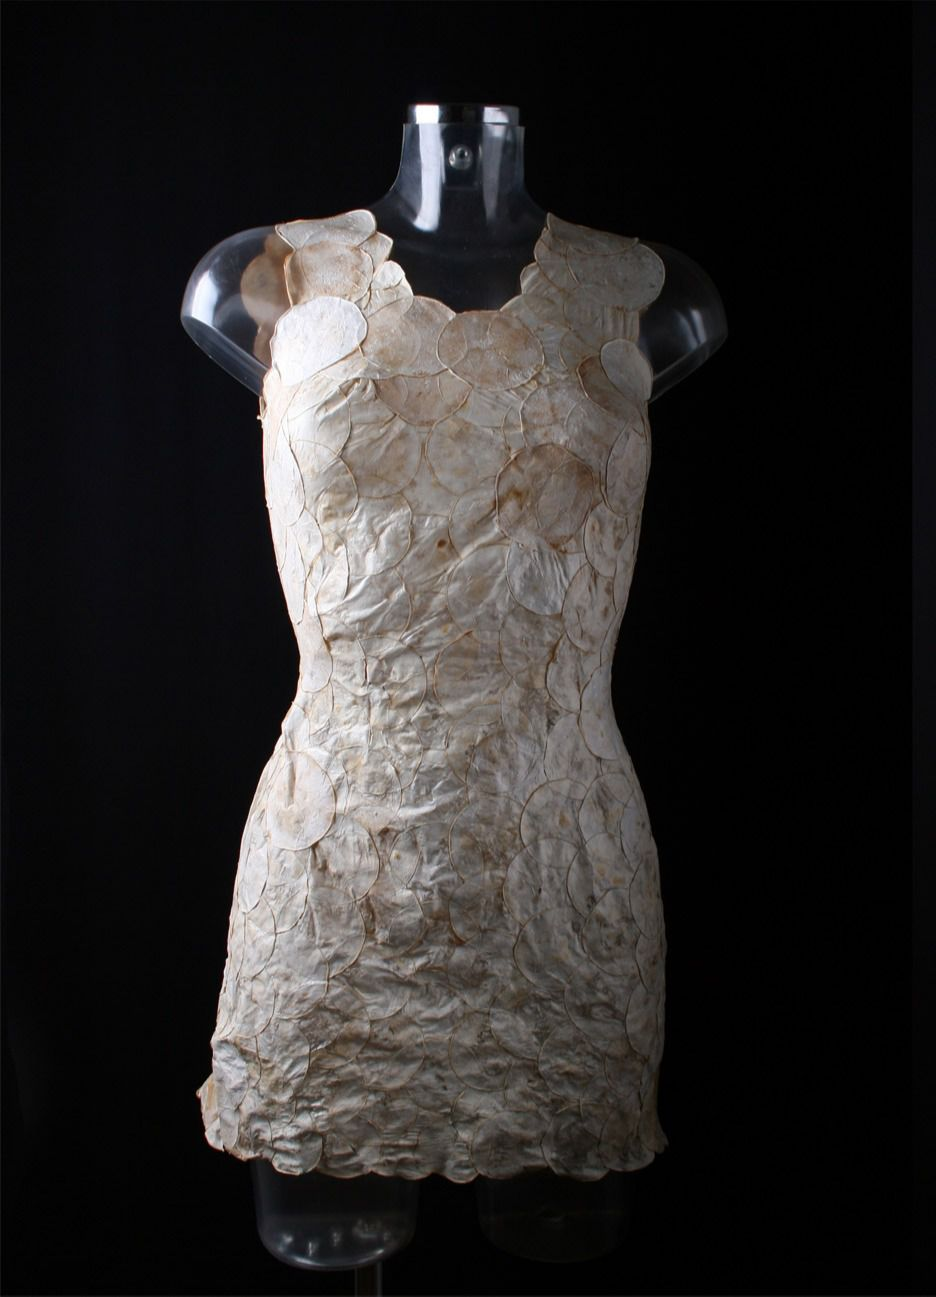 A Dutch fashion designer grows an eco-friendly dress from mushroom root in just one week.